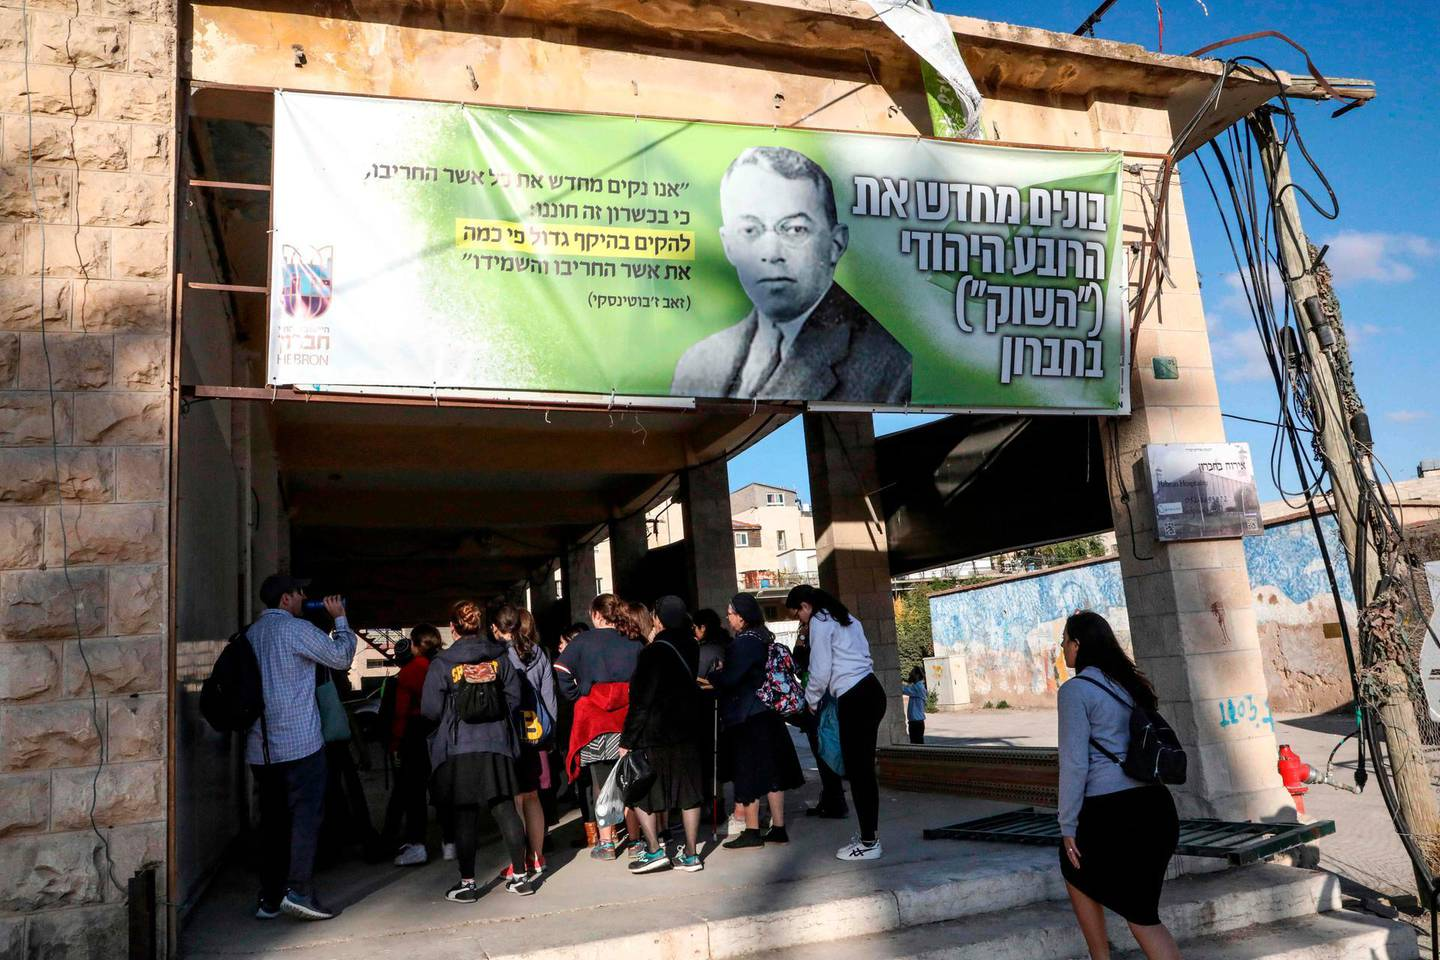 """Israeli visitors walk below a banner showing the portrait of late Zionist leader Ze'ev Jabotinsky and text in Hebrew (R) reading """"Rebuilding the Jewish Quarter 'The Market' in Hebron"""", as they enter an old market building along al-Shuhada street in the flashpoint city of Hebron in the occupied West Bank on December 1, 2019, following an announcement by the new Israeli hard-right defence minister to start planning a new Jewish neighbourhood in the wholesale market complex. Defence Minister Naftali Bennett's announcement came as the prospects of a third snap election since April loomed larger, with his New Right party leaning heavily on settlers for support at the polls. The market area is on Hebron's once-bustling Shuhada Street, now largely closed off to Palestinians, and which leads to the holy site where biblical patriarch Abraham is believed to have been buried. / AFP / HAZEM BADER"""